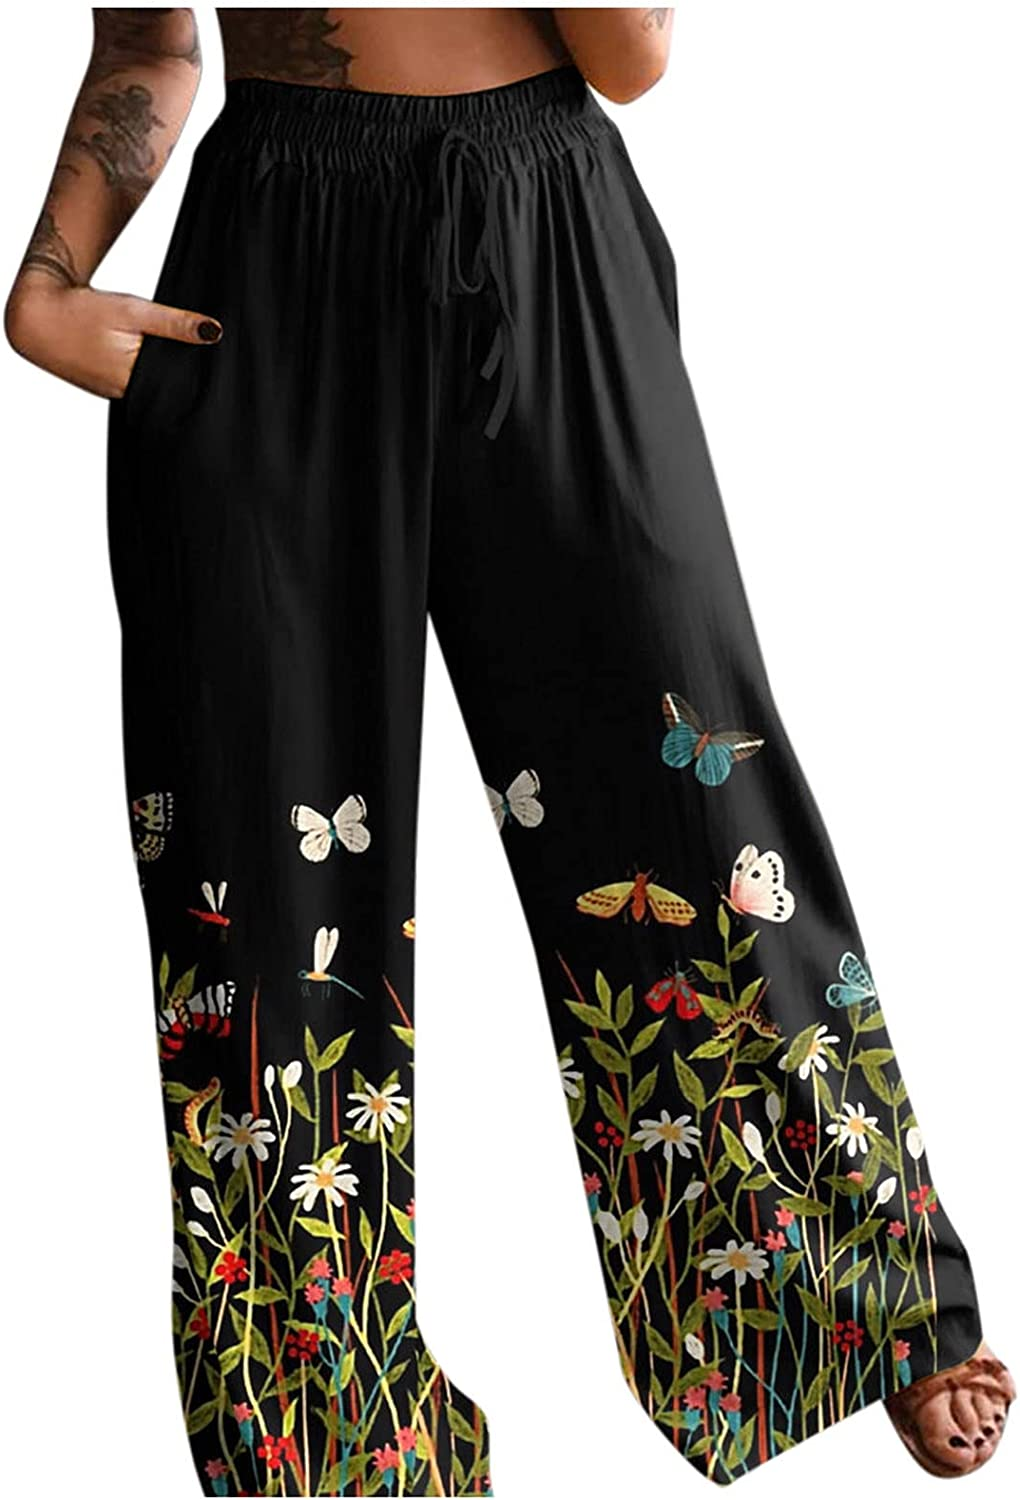 Women's Stretchy Wide Leg Palazzo Lounge Pants Casual Floral Print Belted Summer Beach High Waist Wide Leg Pants with Pockets